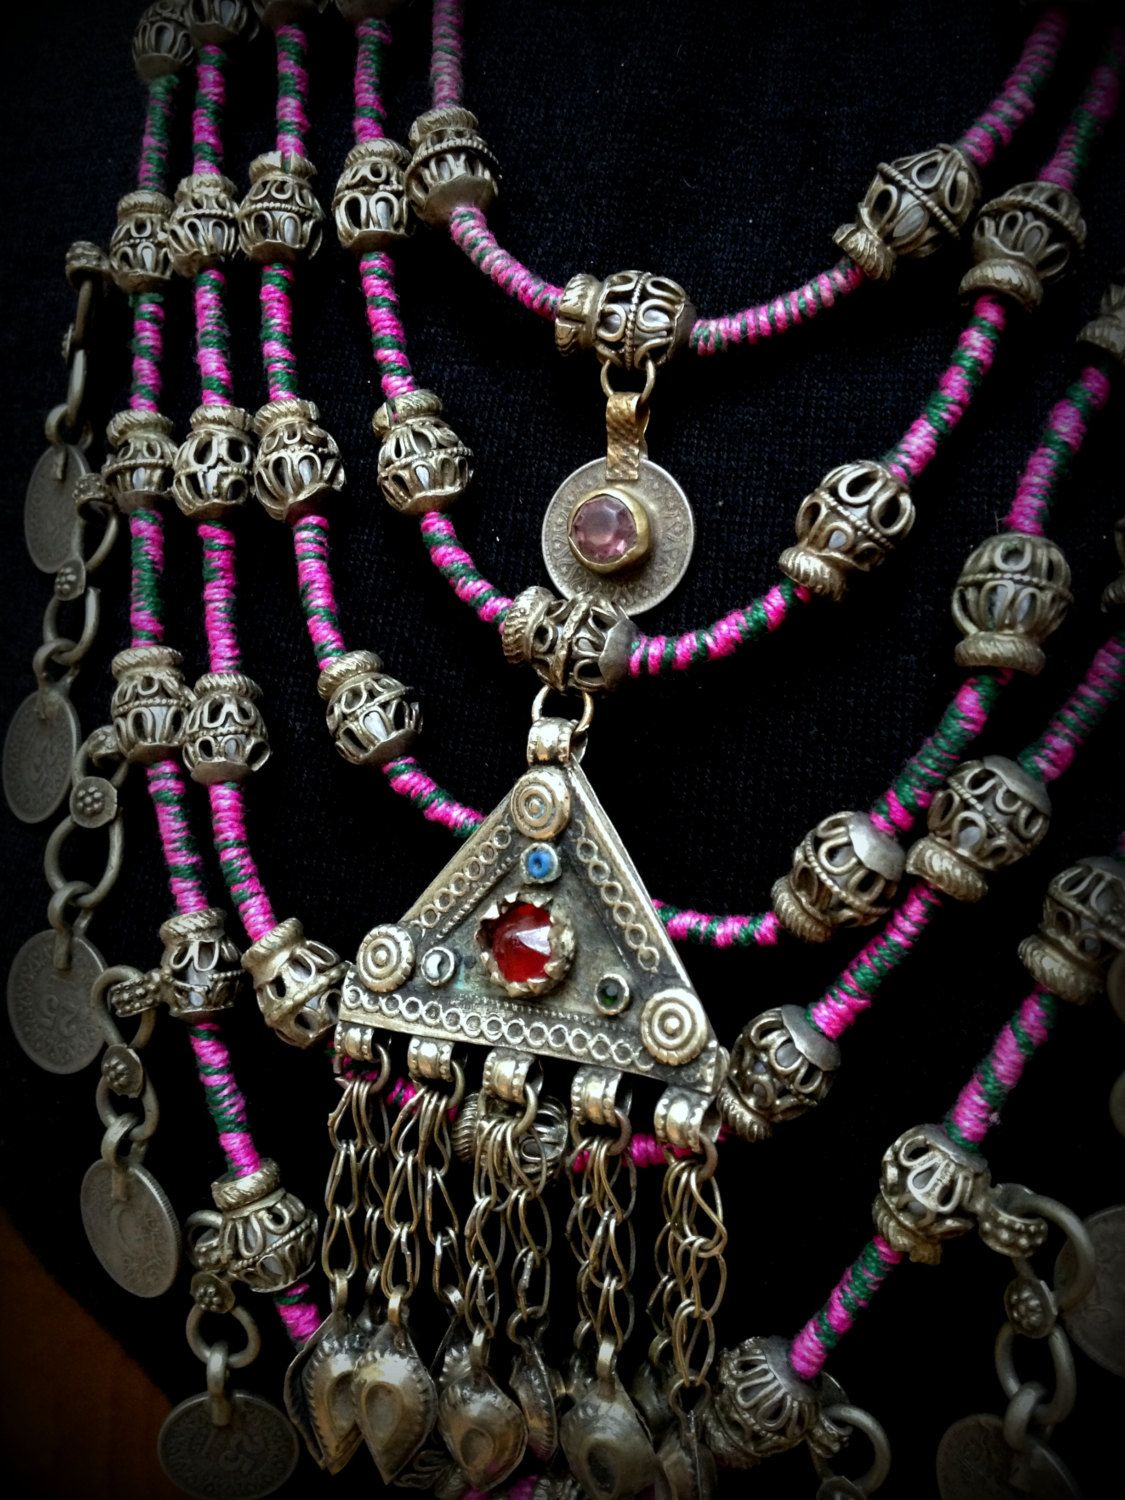 Large banjara necklace with kuchi pendants and coins unusual tribal large banjara necklace with kuchi pendants and coins unusual tribal coin necklace banjara necklace gypsy coin necklace kuchi necklace pink aloadofball Gallery